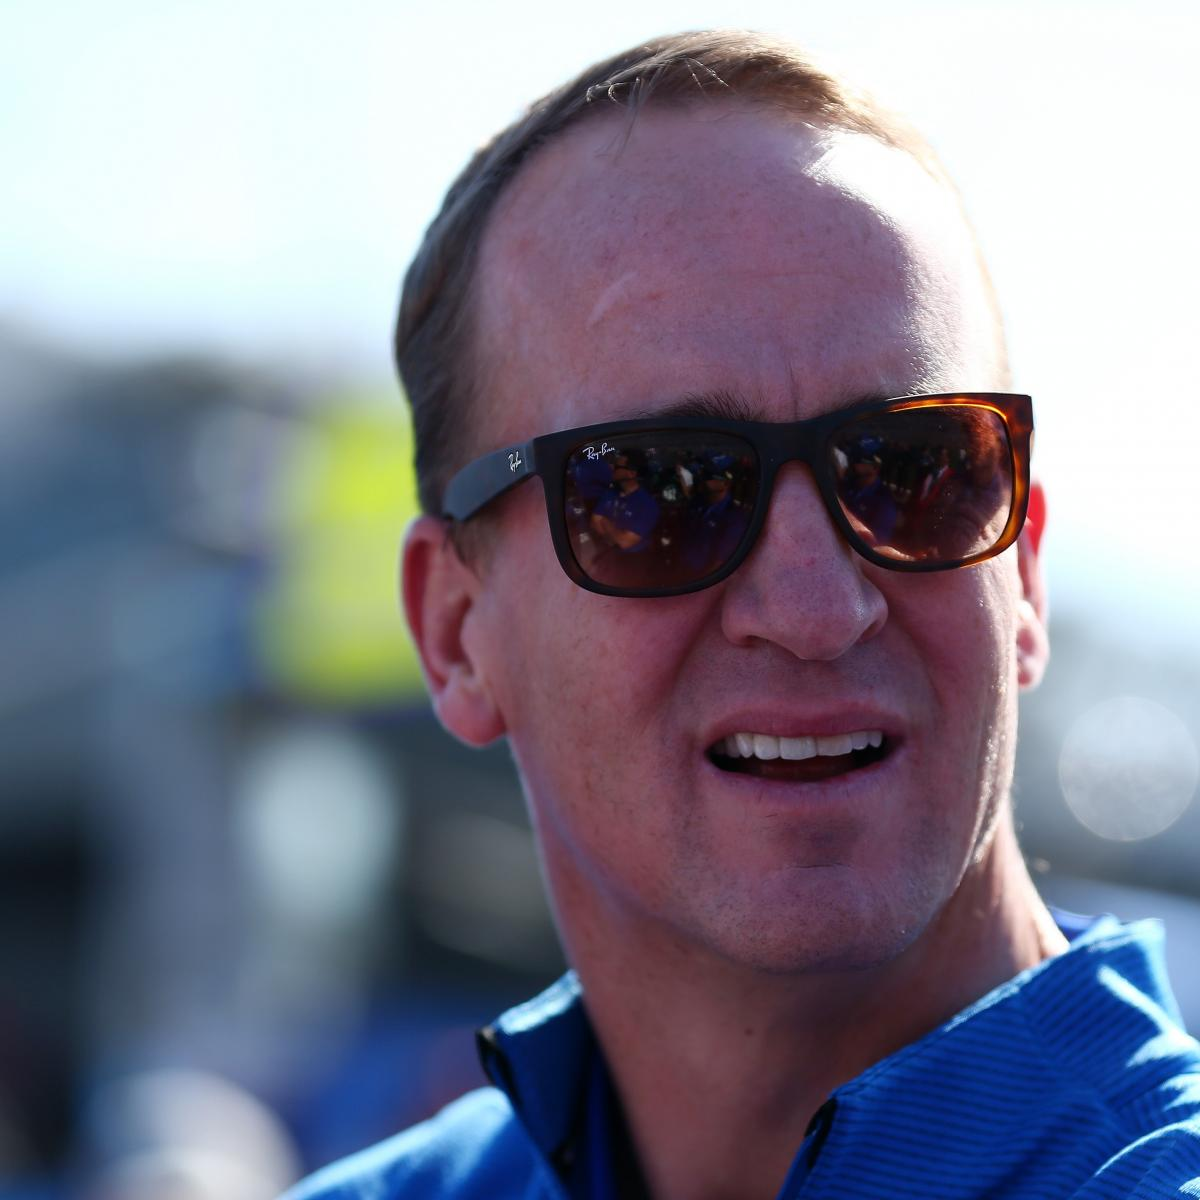 Flipboard Sports Highlights News Now: Report: Peyton Manning Could Make $10 Million Per Year